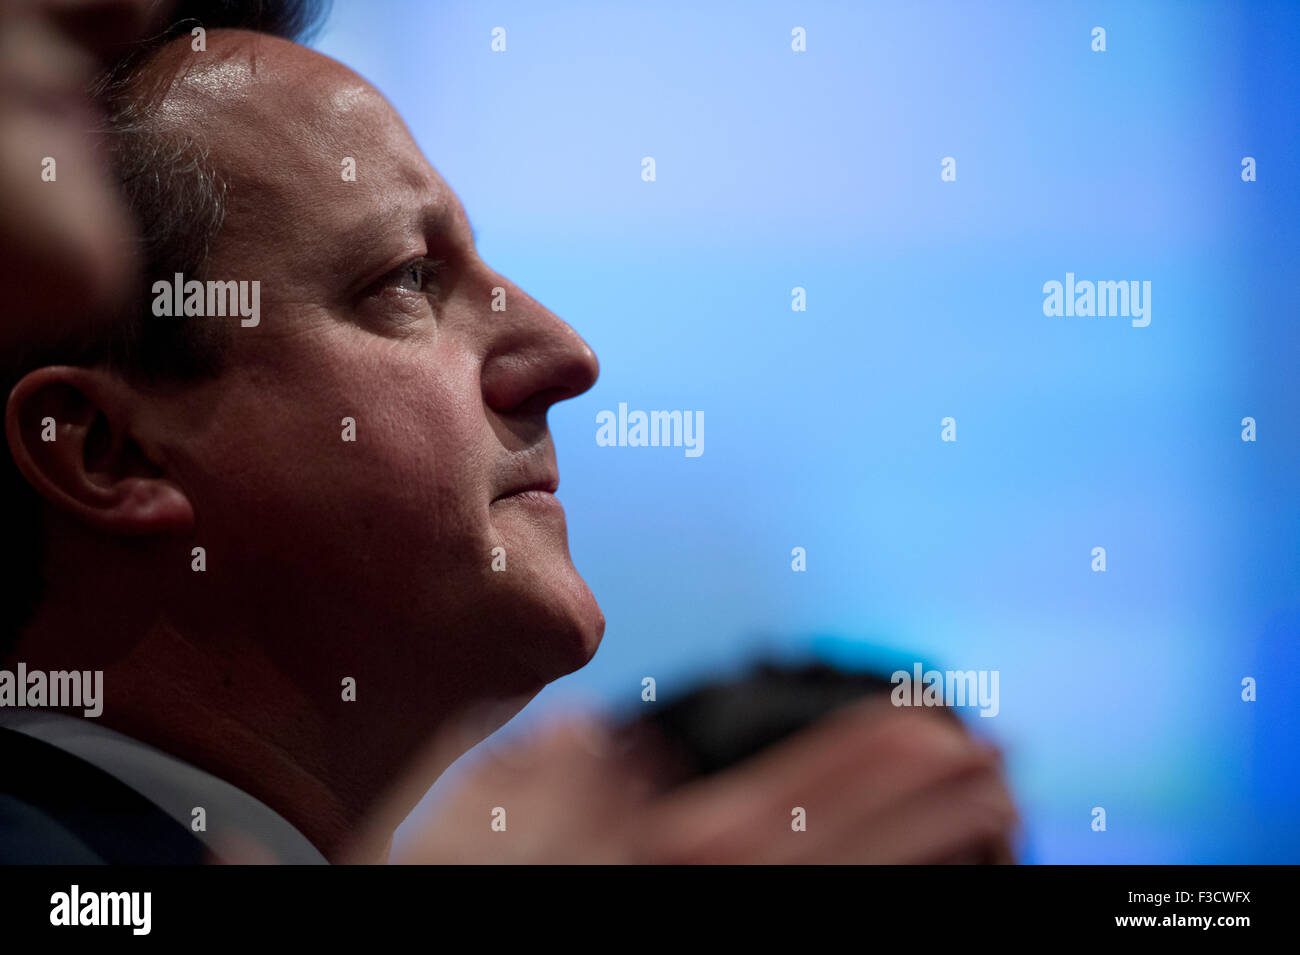 Manchester, UK. 5th October 2015. The Rt Hon David Cameron MP, Prime Minister, First Lord of the Treasury, Minister - Stock Image